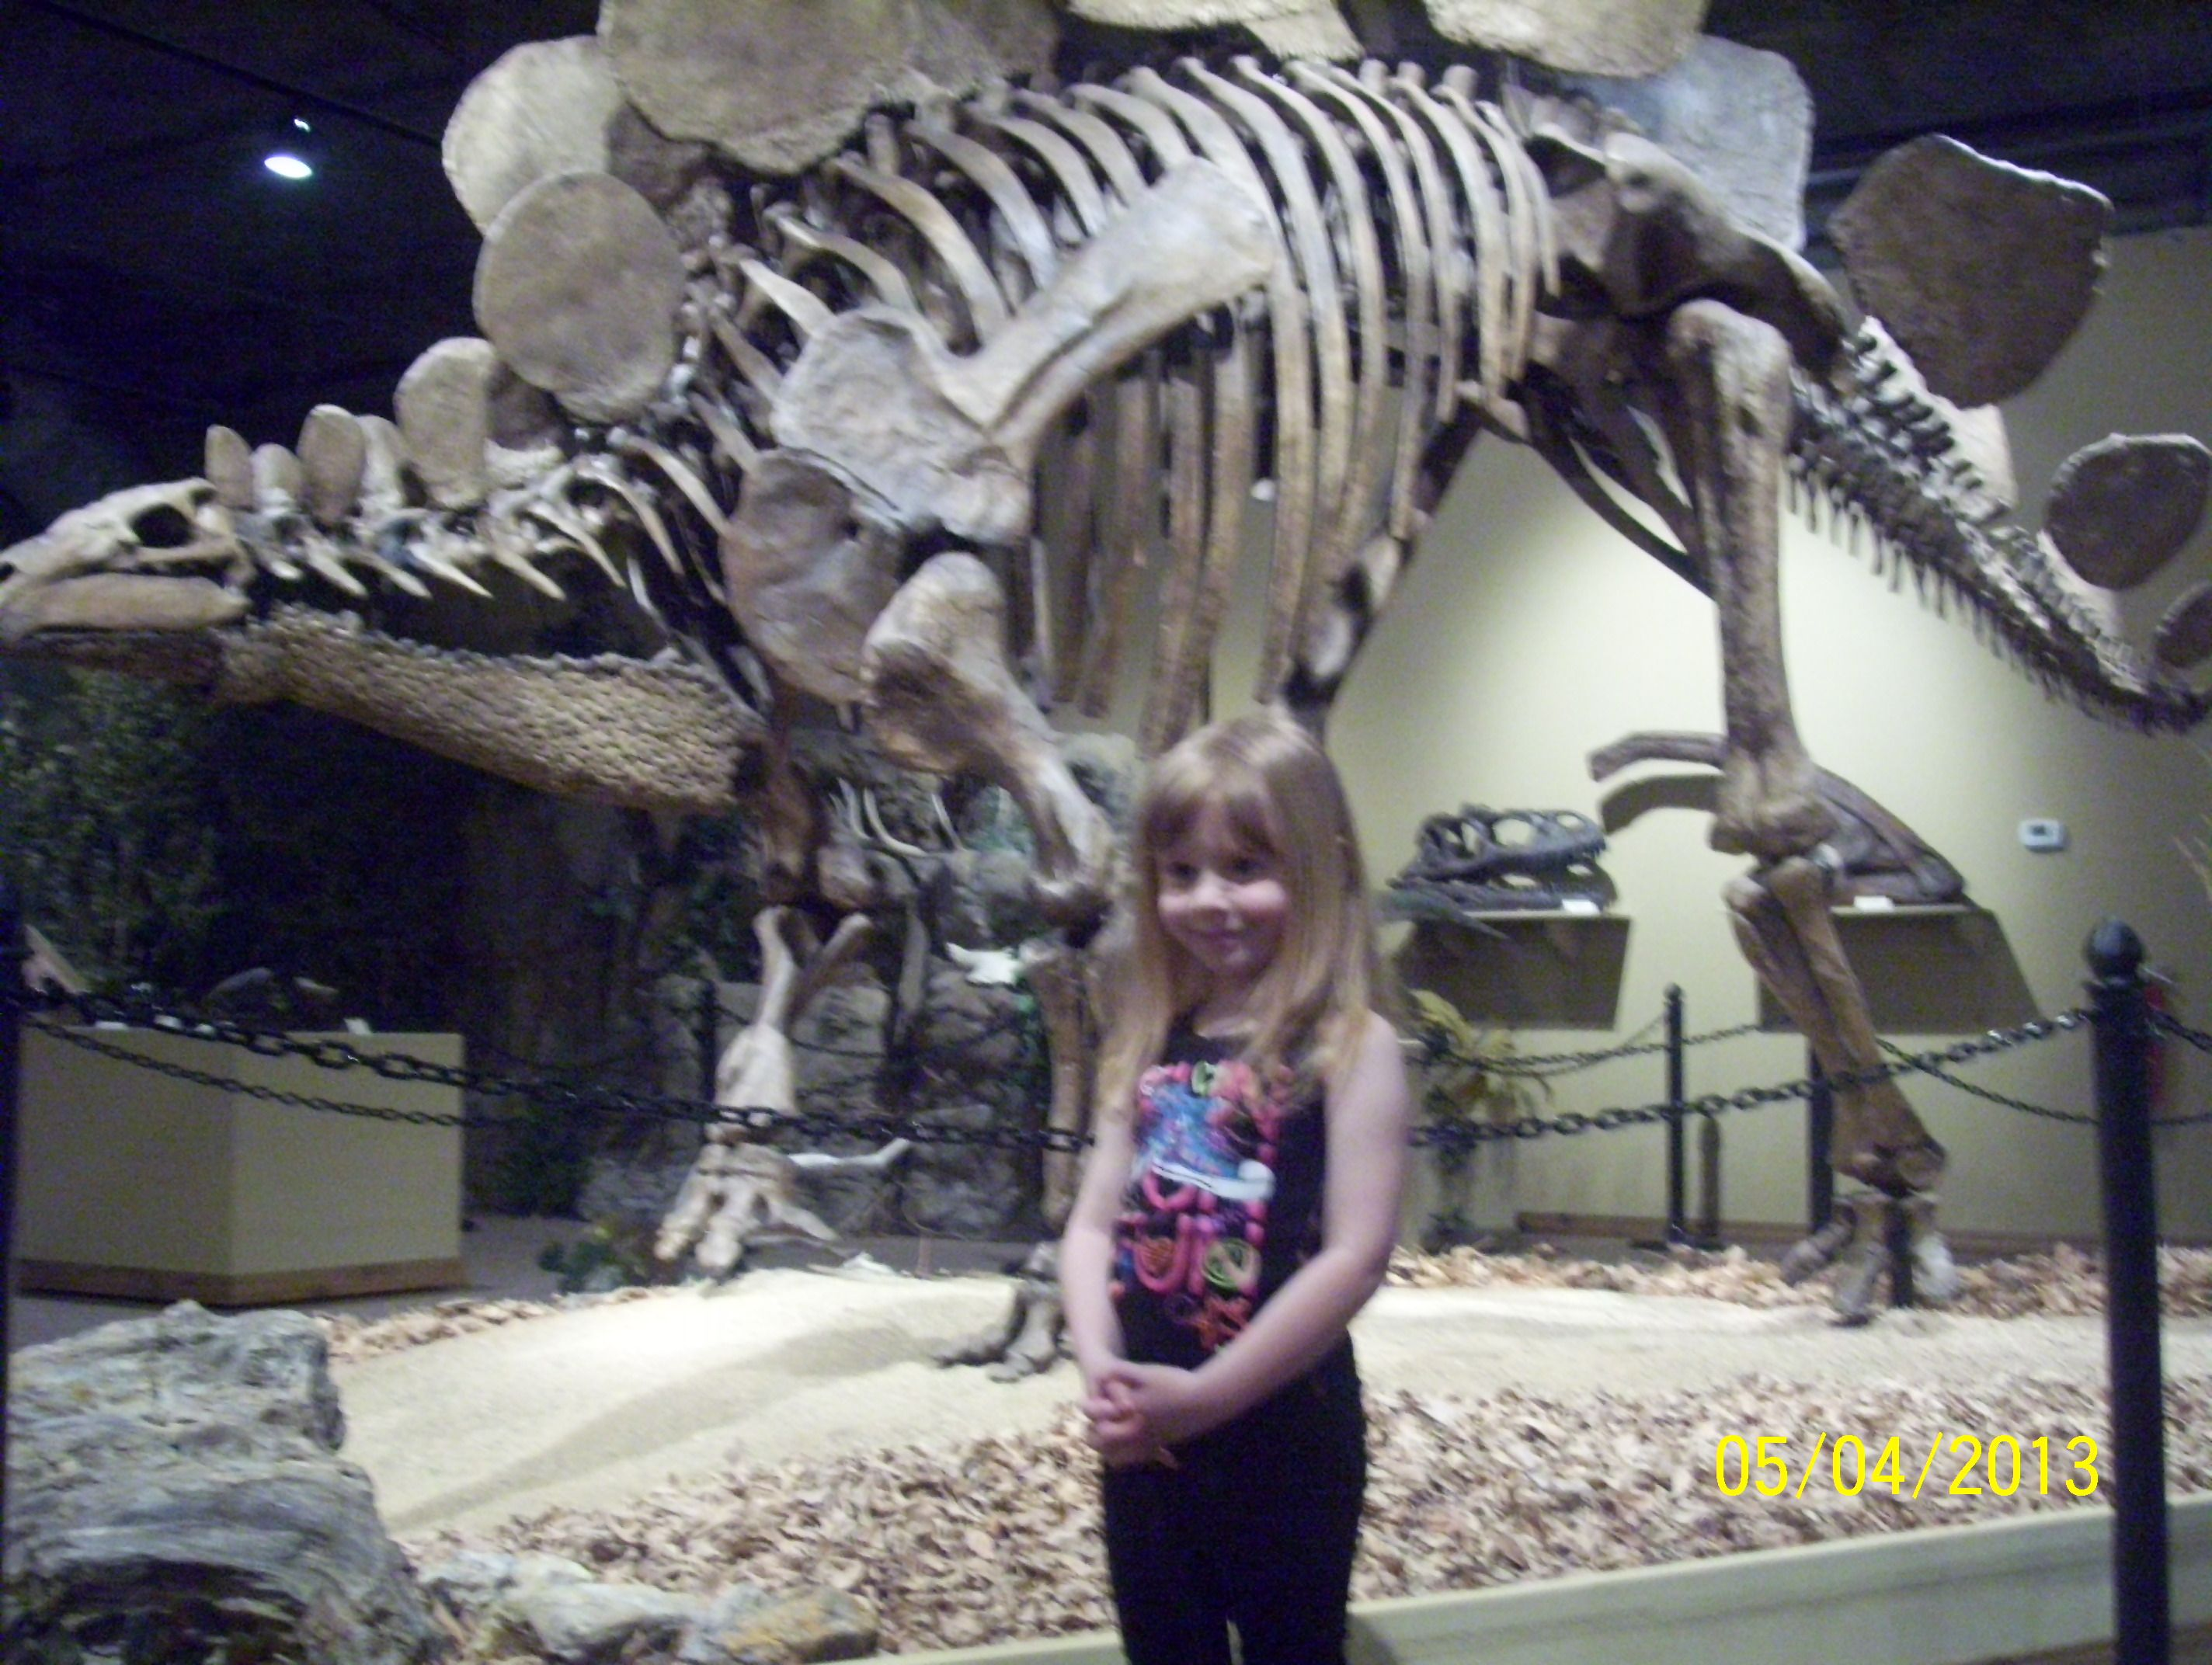 Stegosaurus at the glendive dinosaur and fossil museum Dinosaur museum ohio